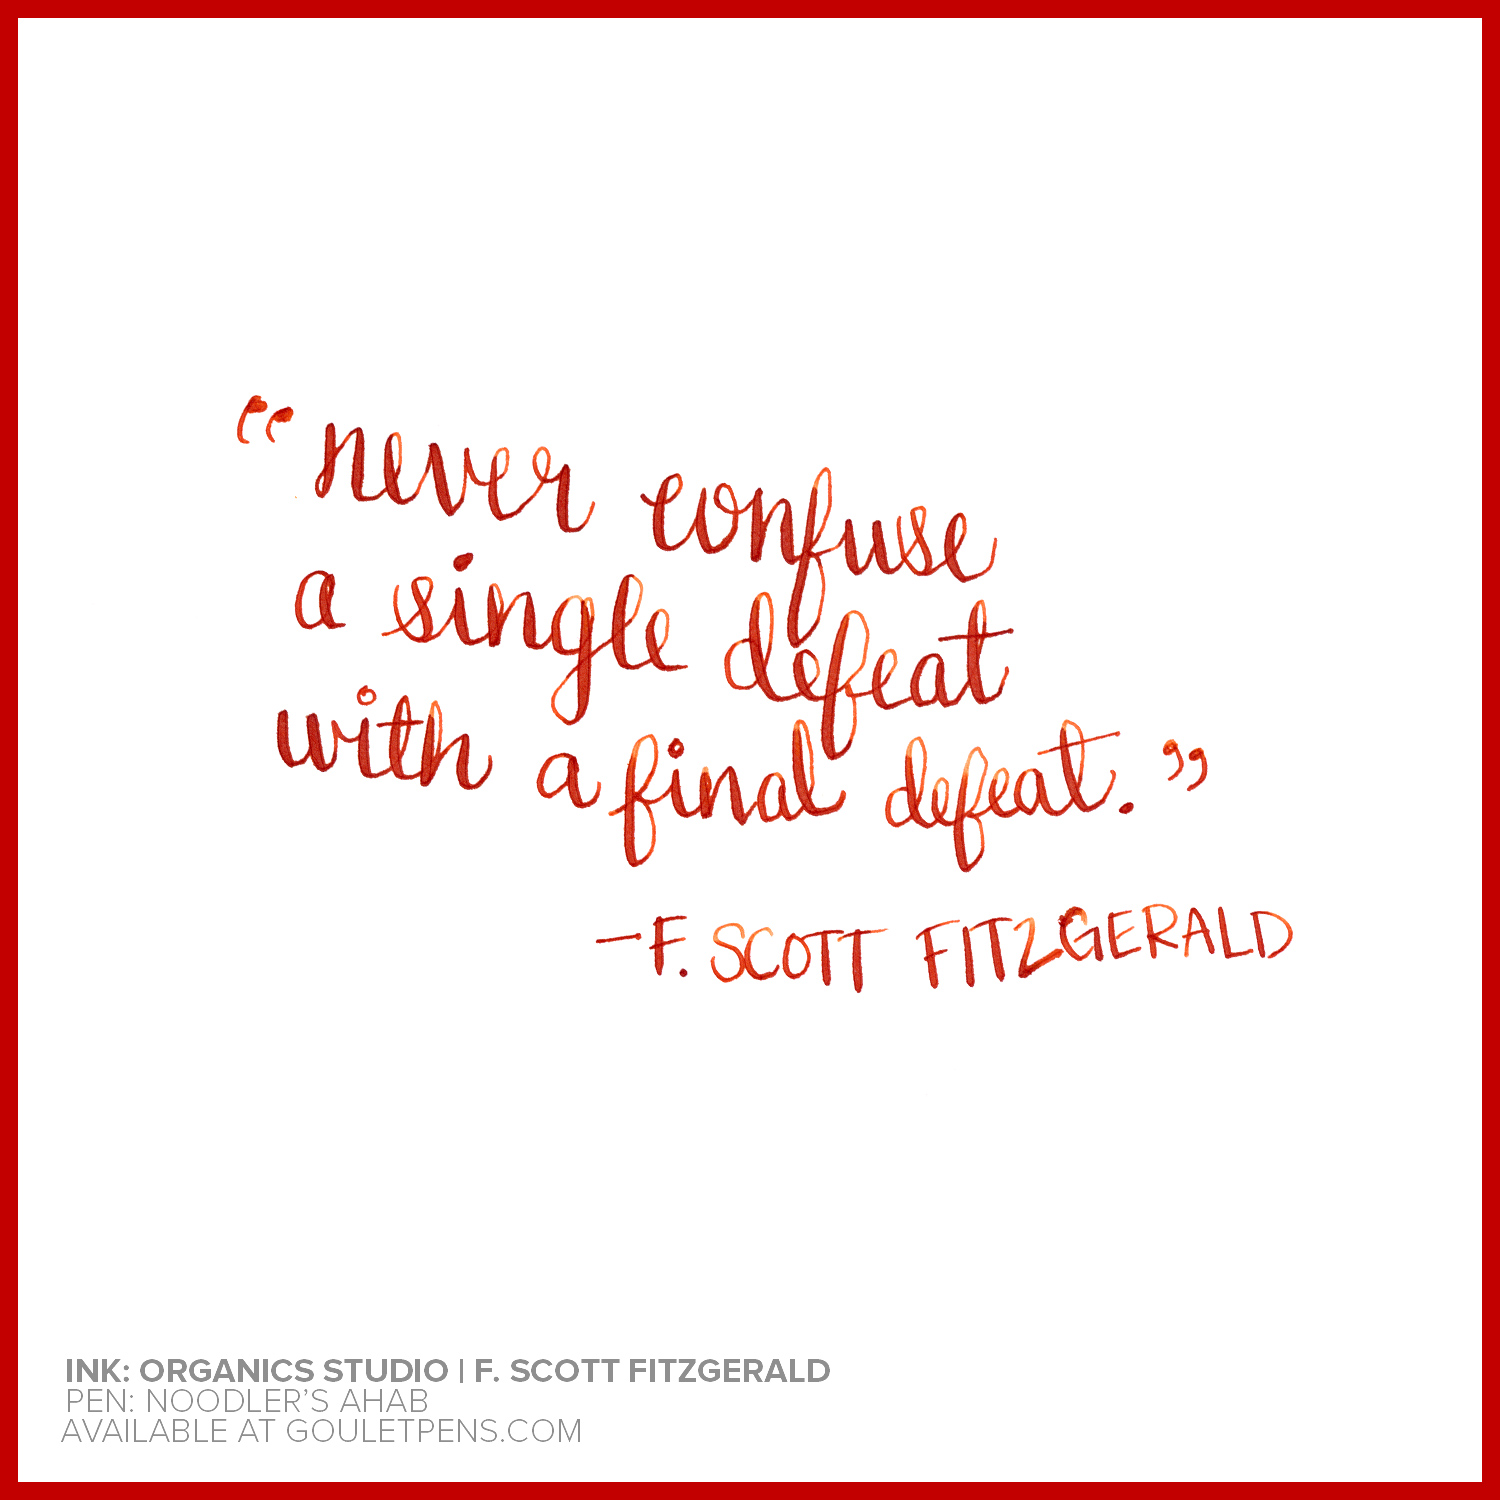 F Scott Fitzgerald Love Quote Create Calligraphystyle Quotes With A Noodler's Flex Pen And